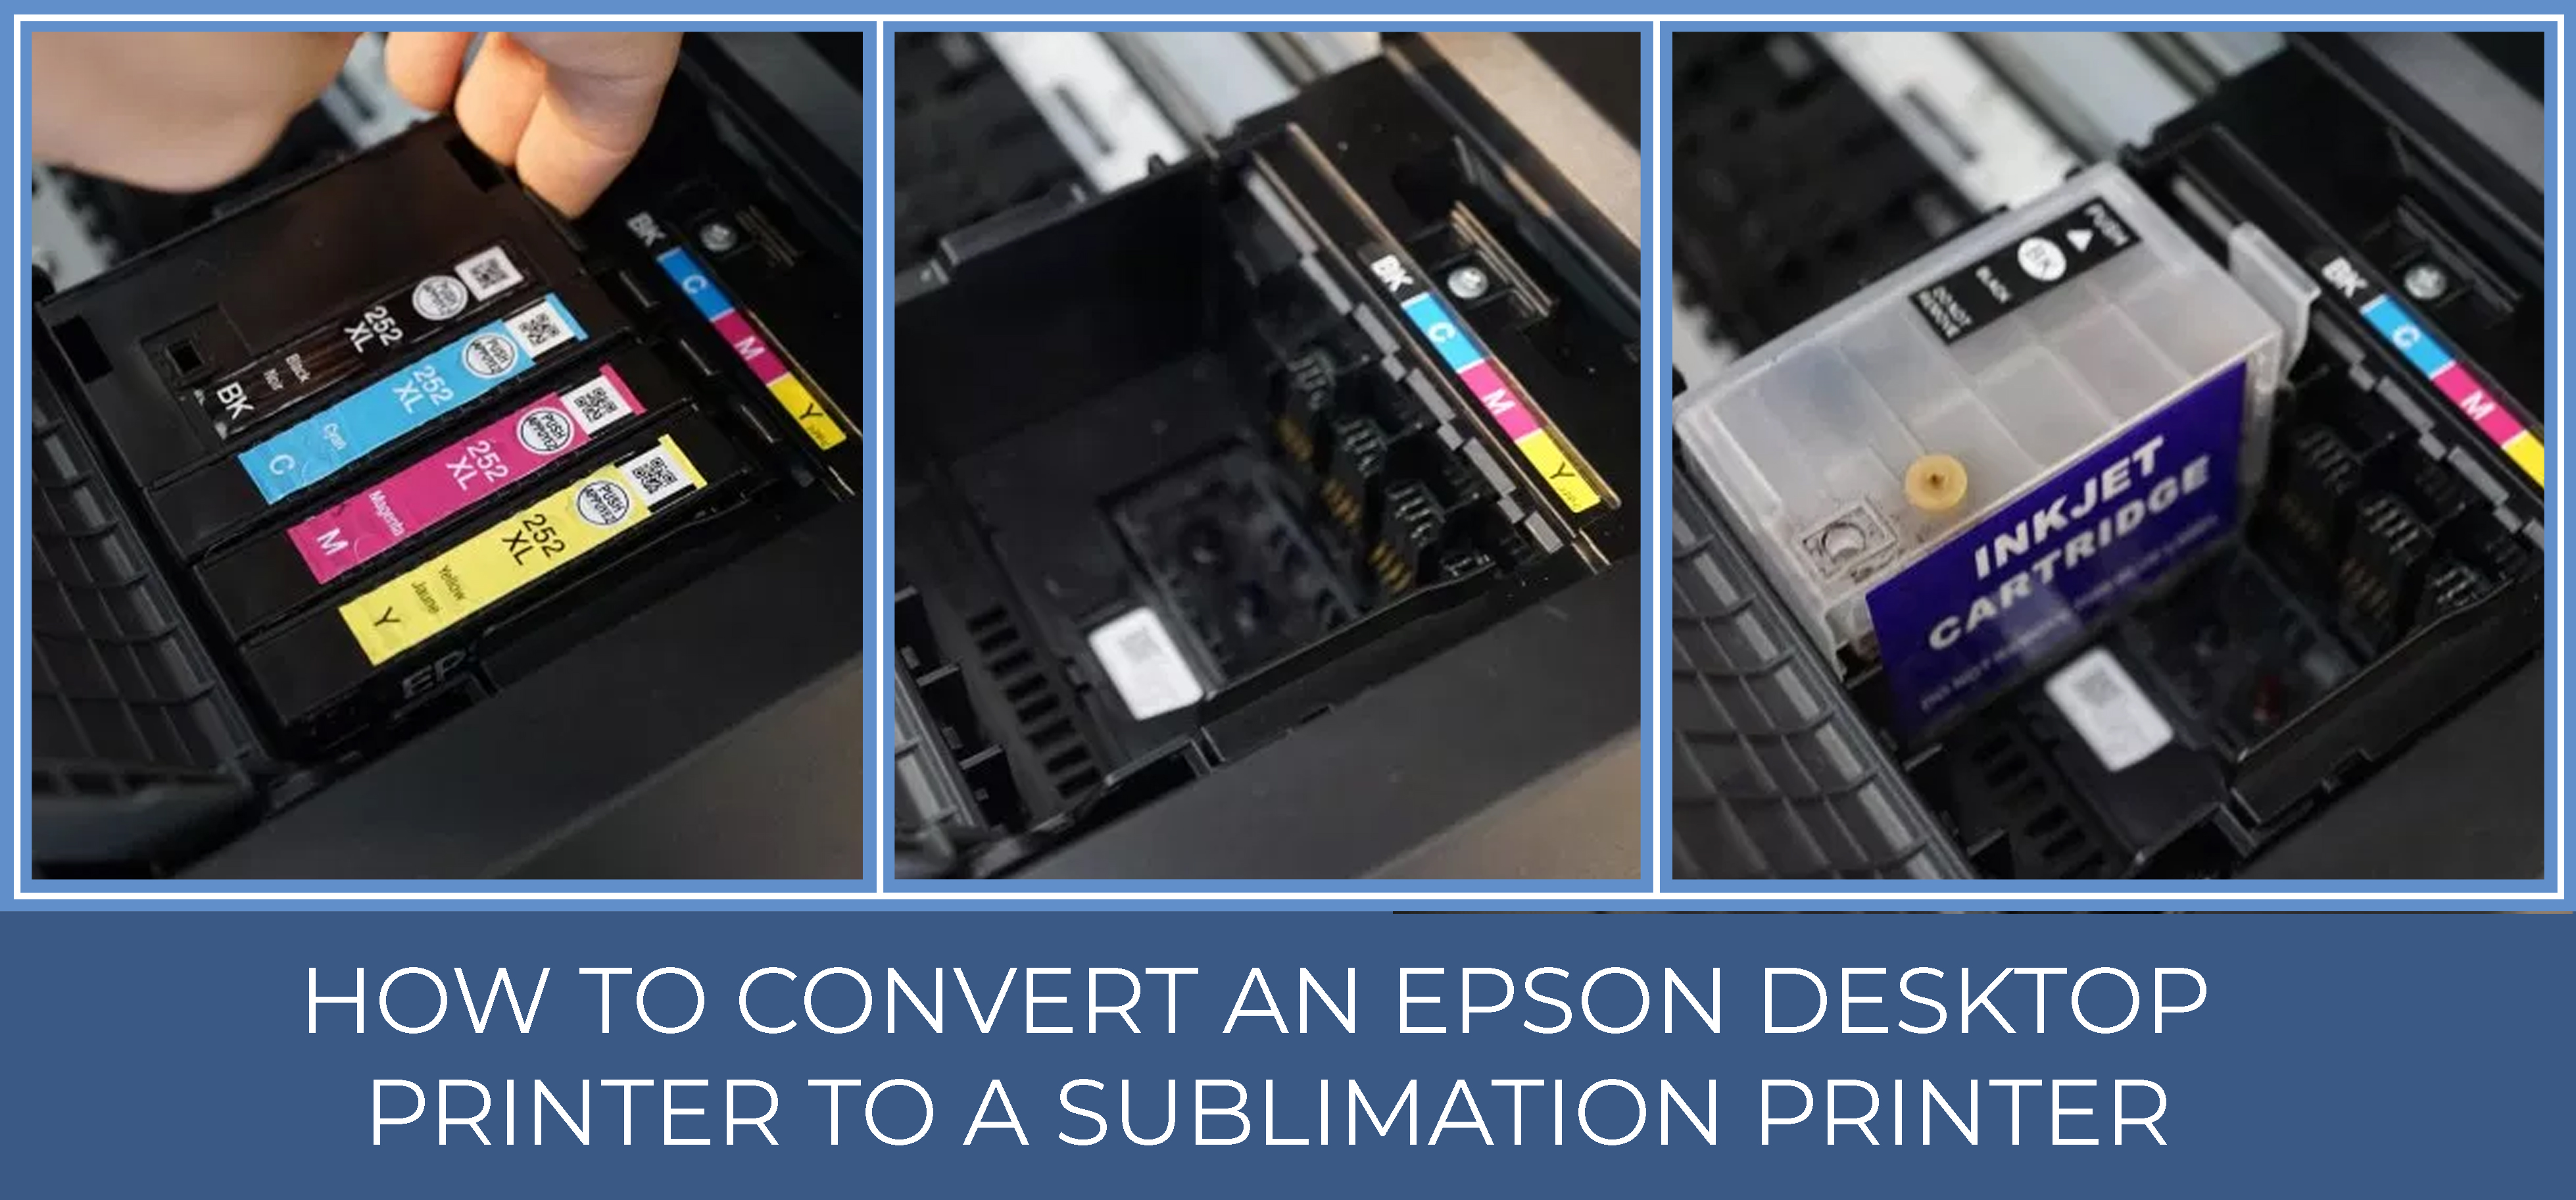 How to Convert an Epson Desktop Printer to a Sublimation